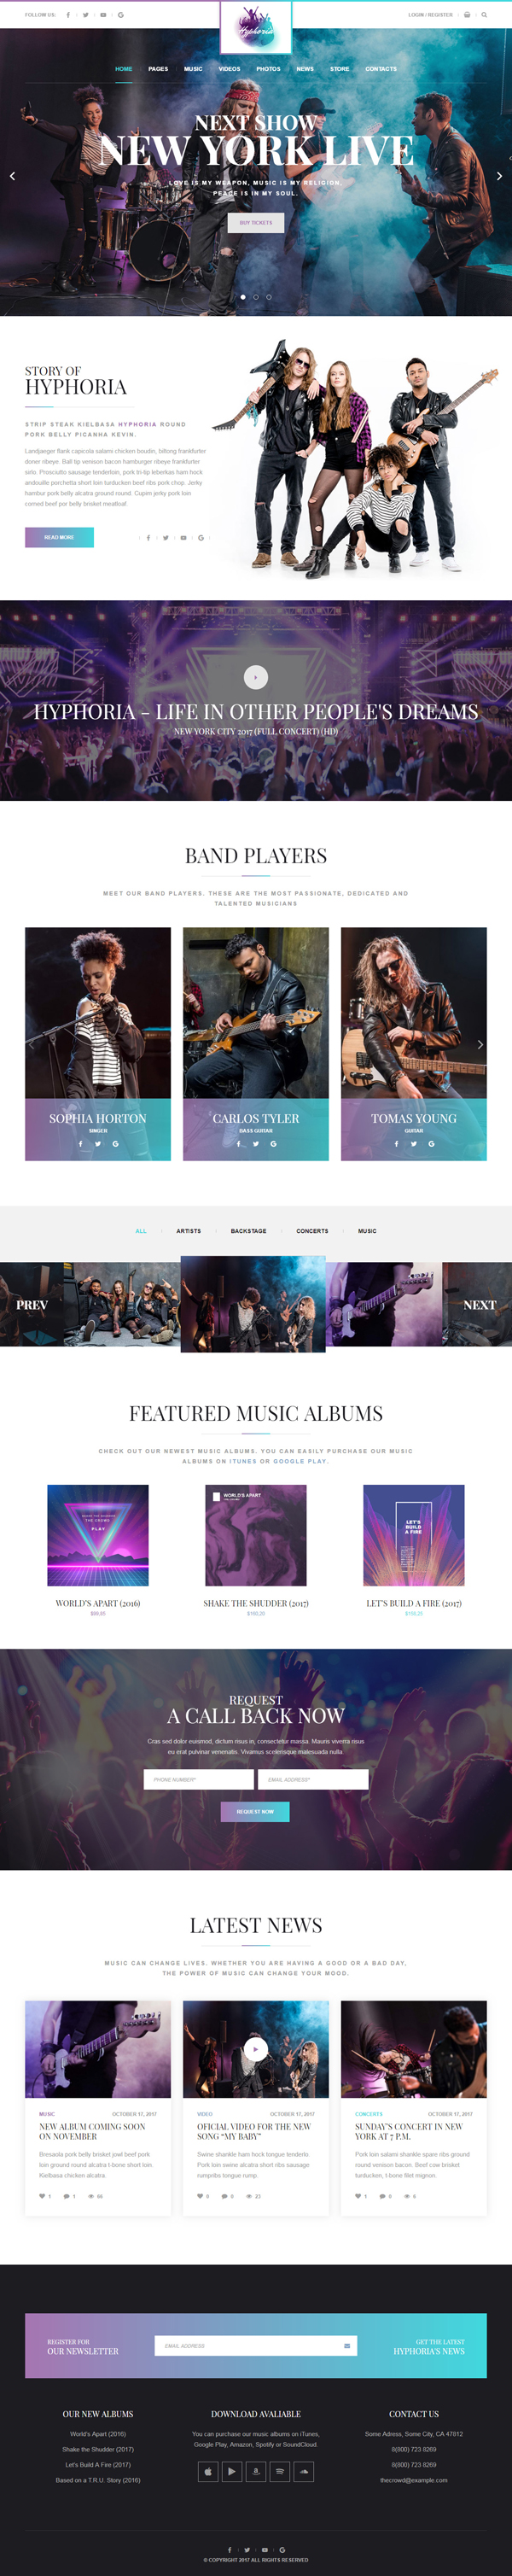 Hyphoria - Rock Band WordPress Theme